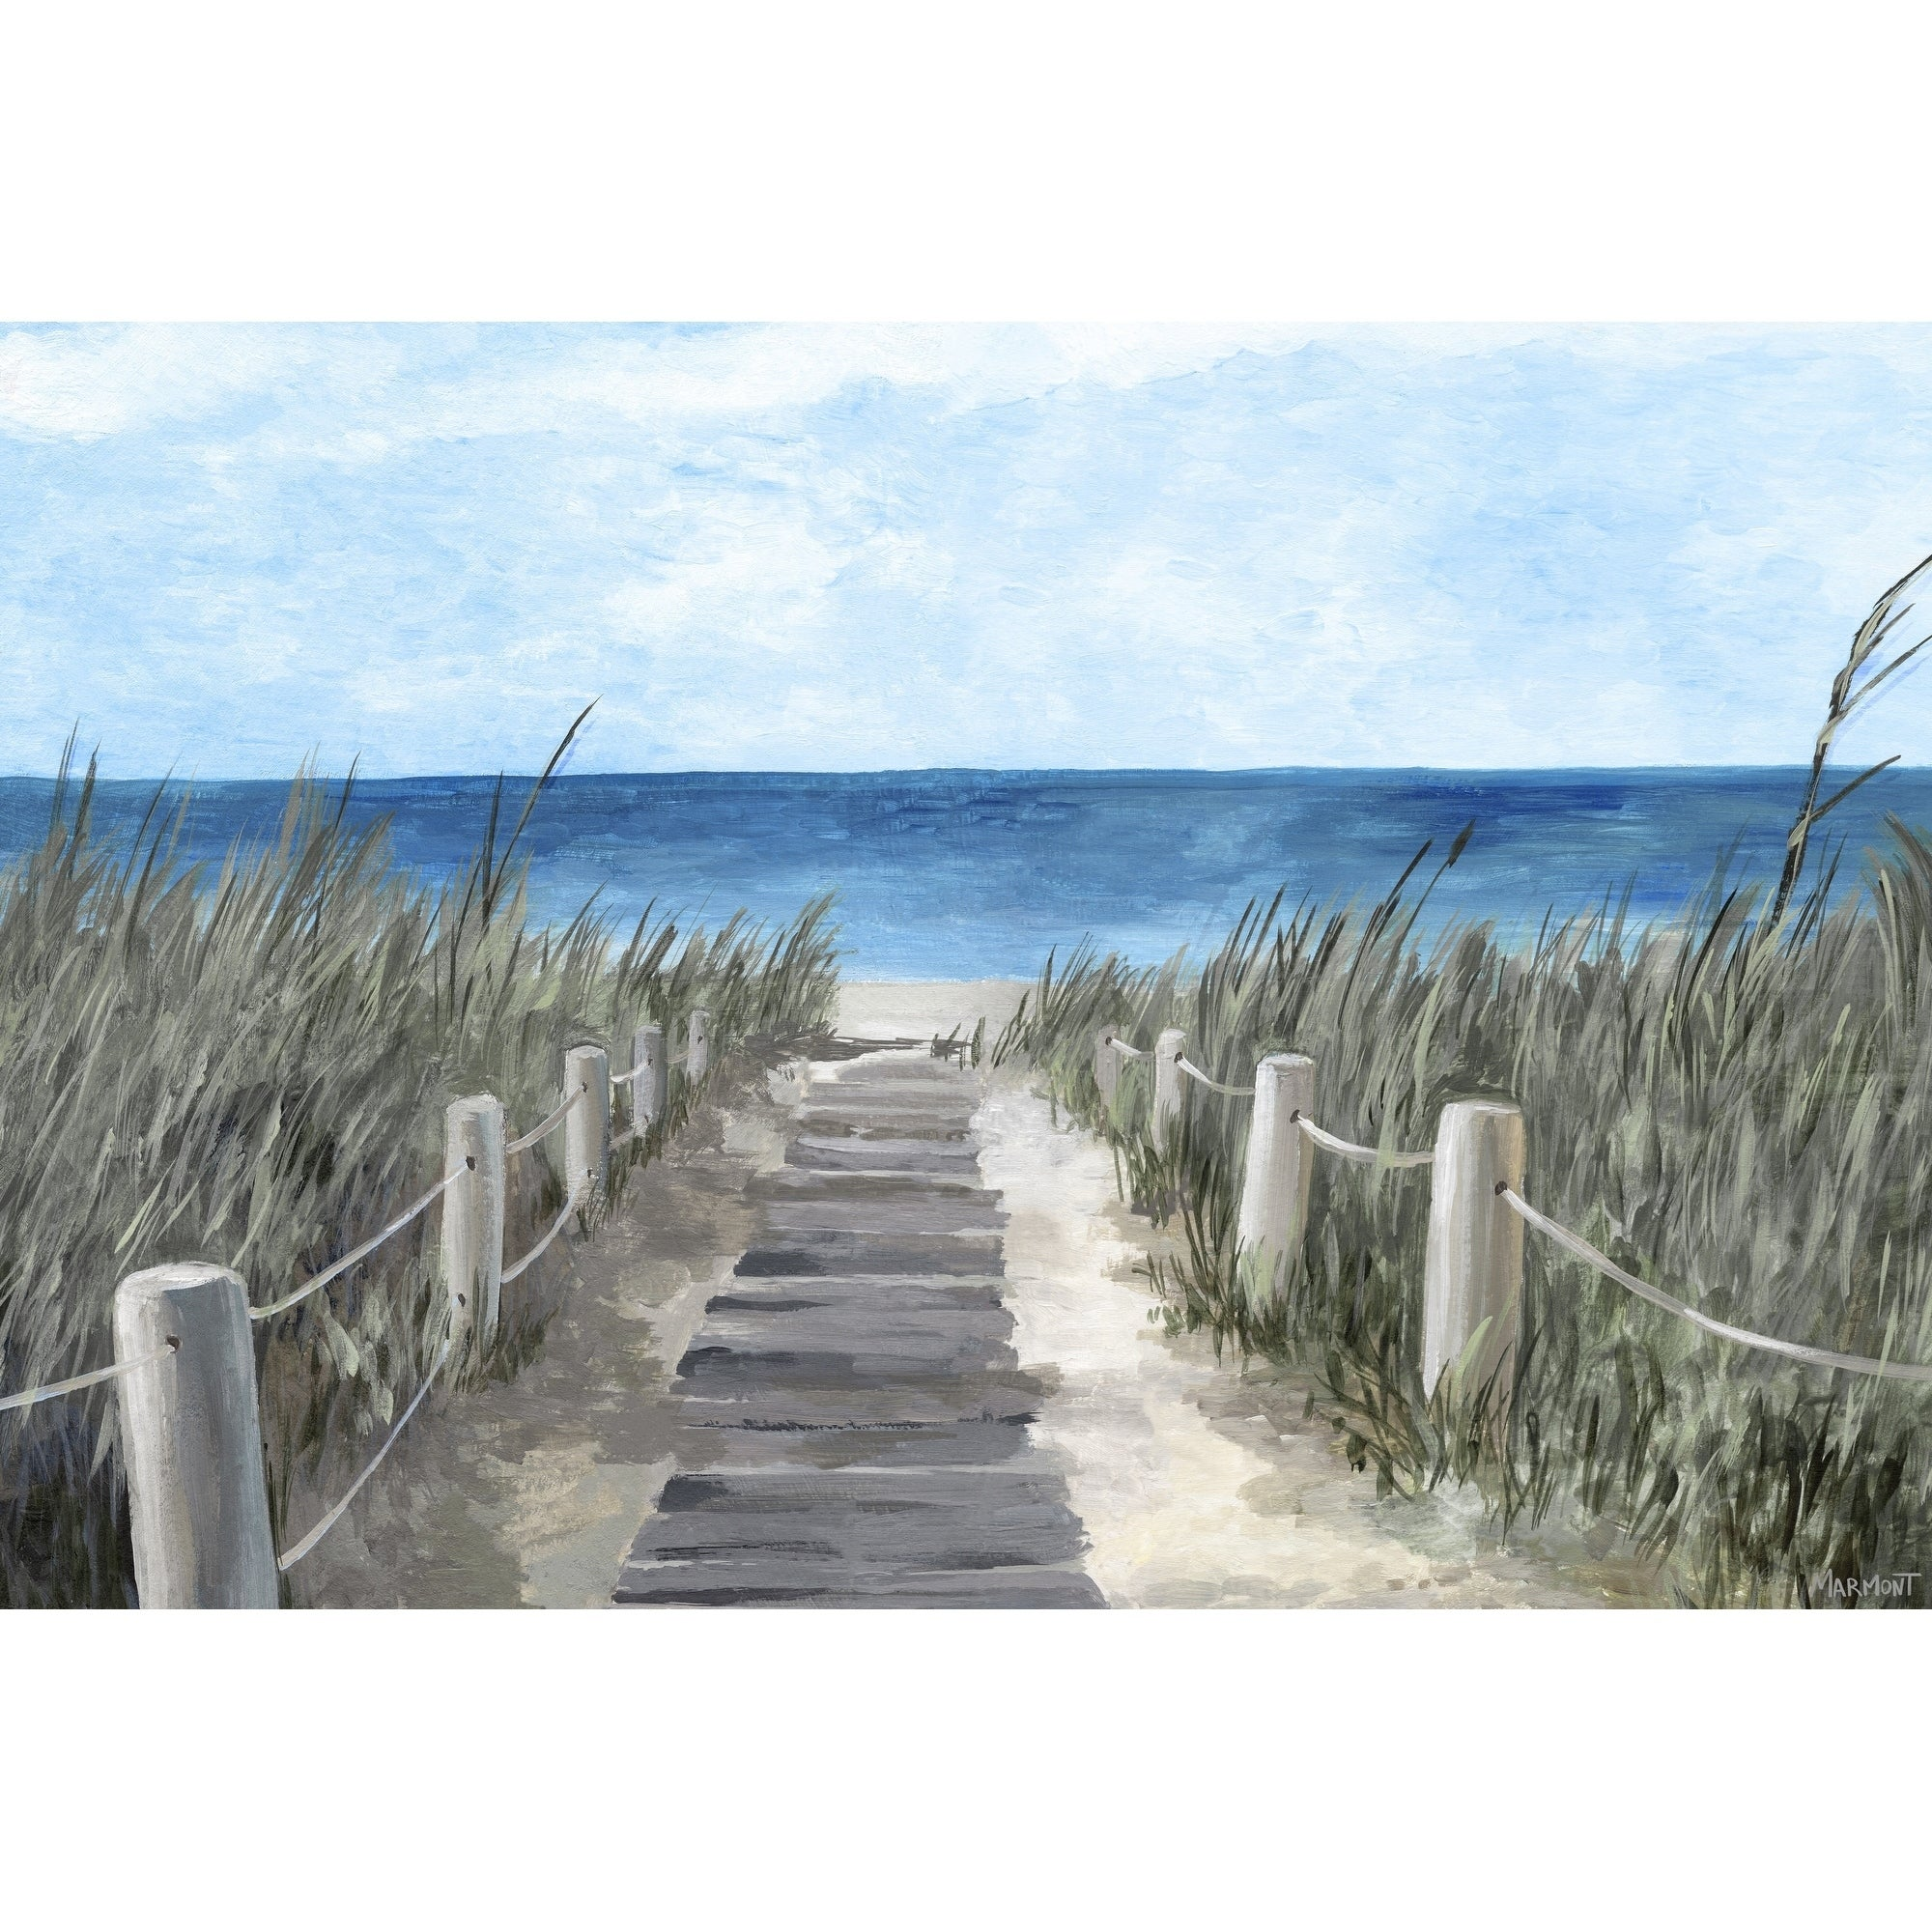 Beach Wood Path Painting Print On Wrapped Canvas Overstock 30243613